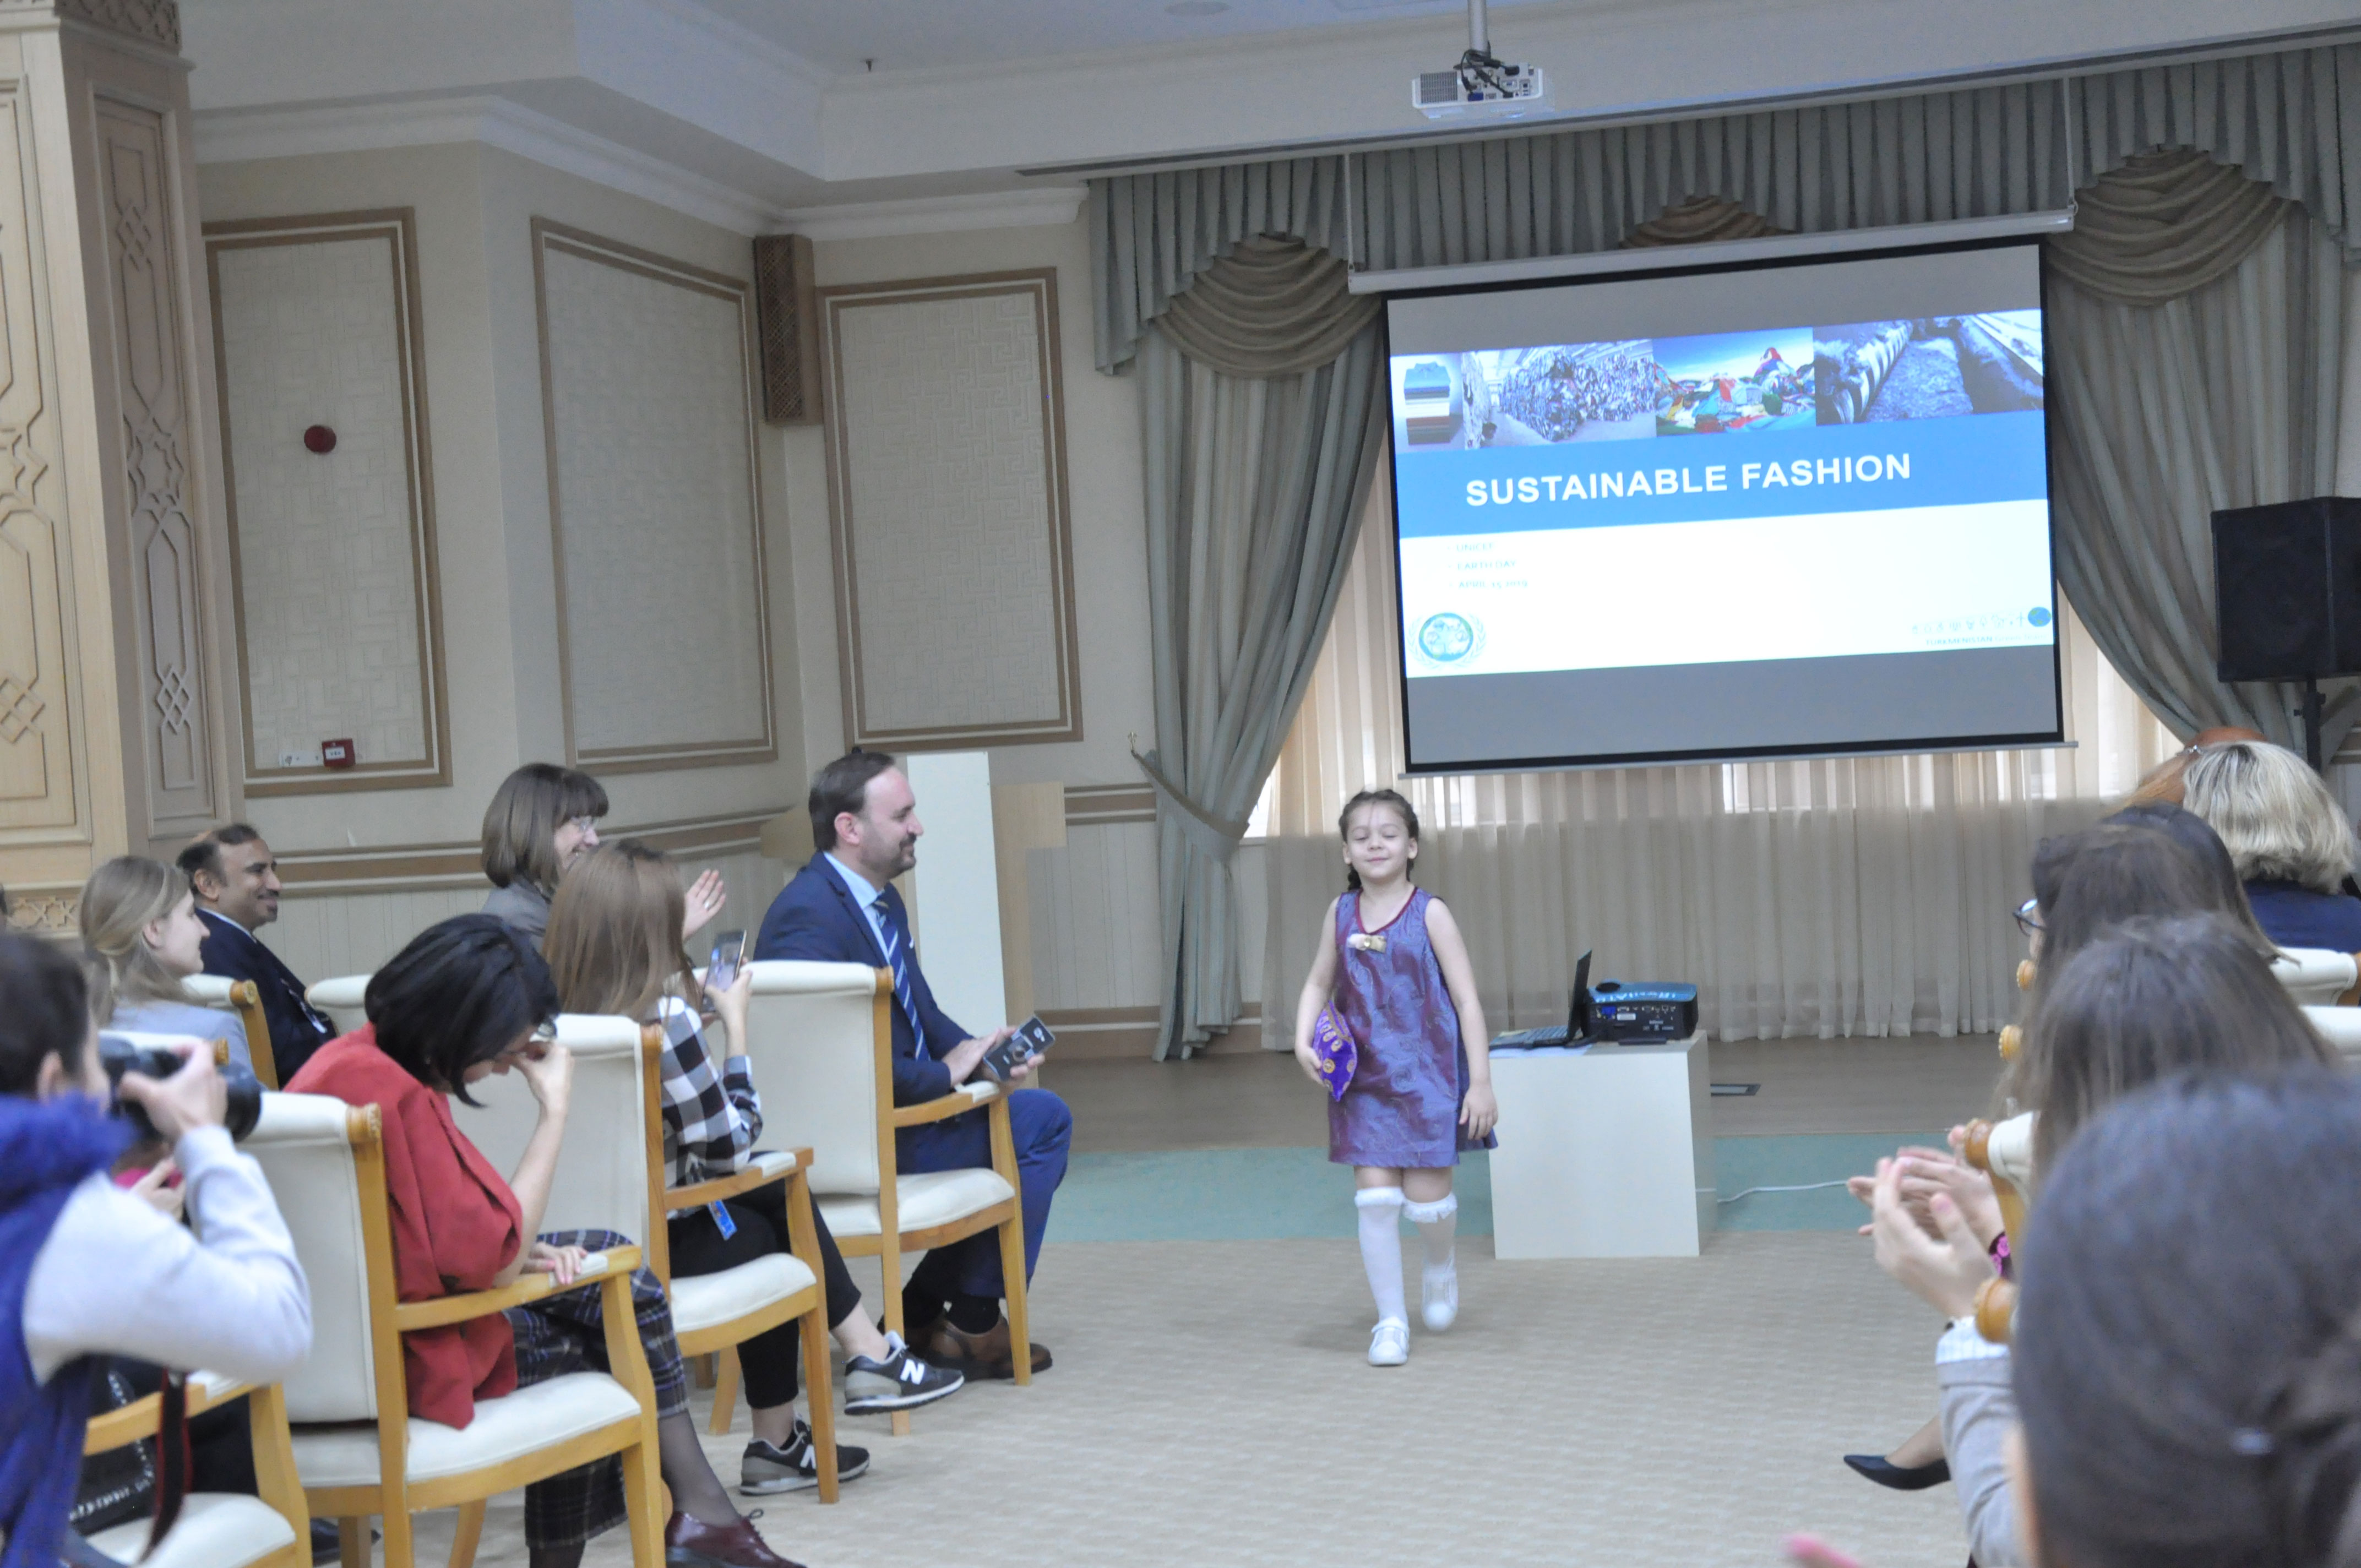 Sustainable Fashion-new way of thinking for UN Turkmenistan